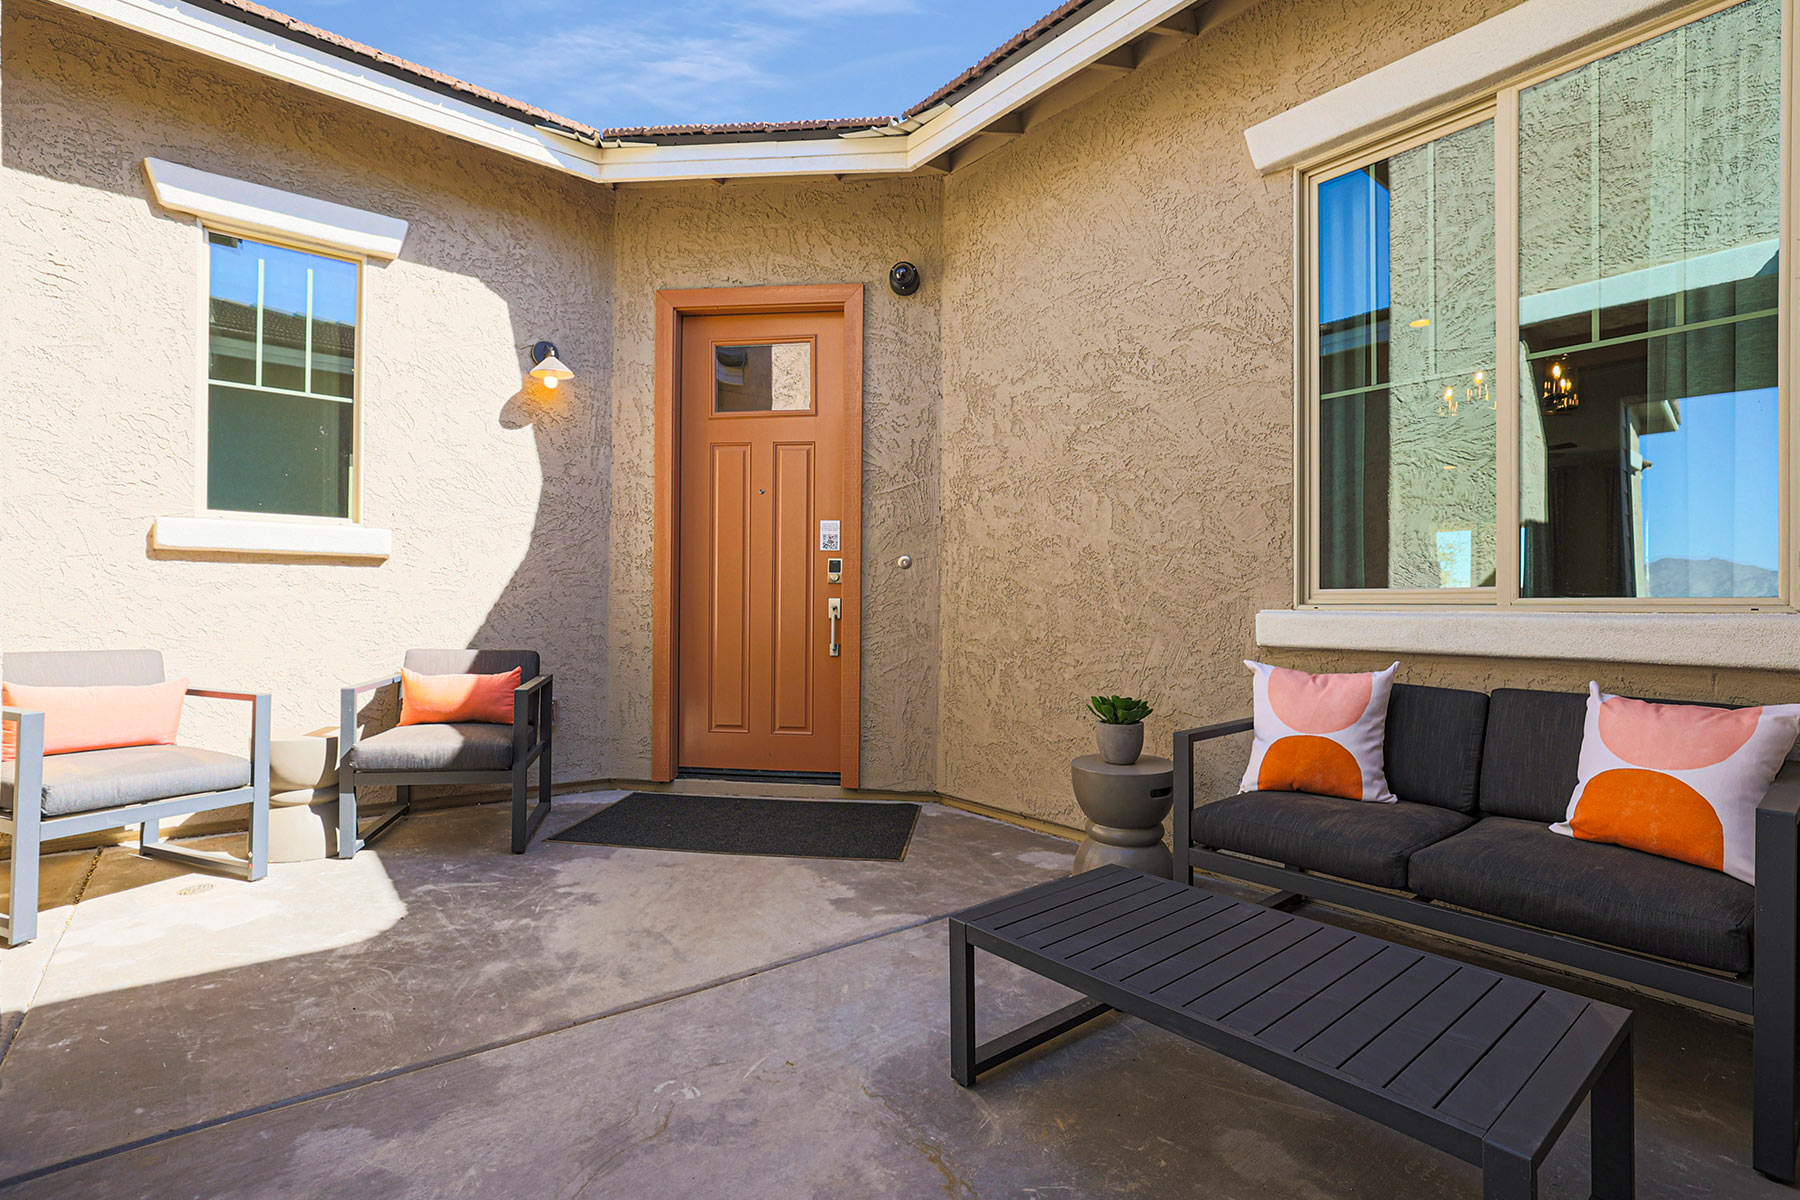 Castleton Plan Front Porch at Azure Canyon in Litchfield Park Arizona by Mattamy Homes